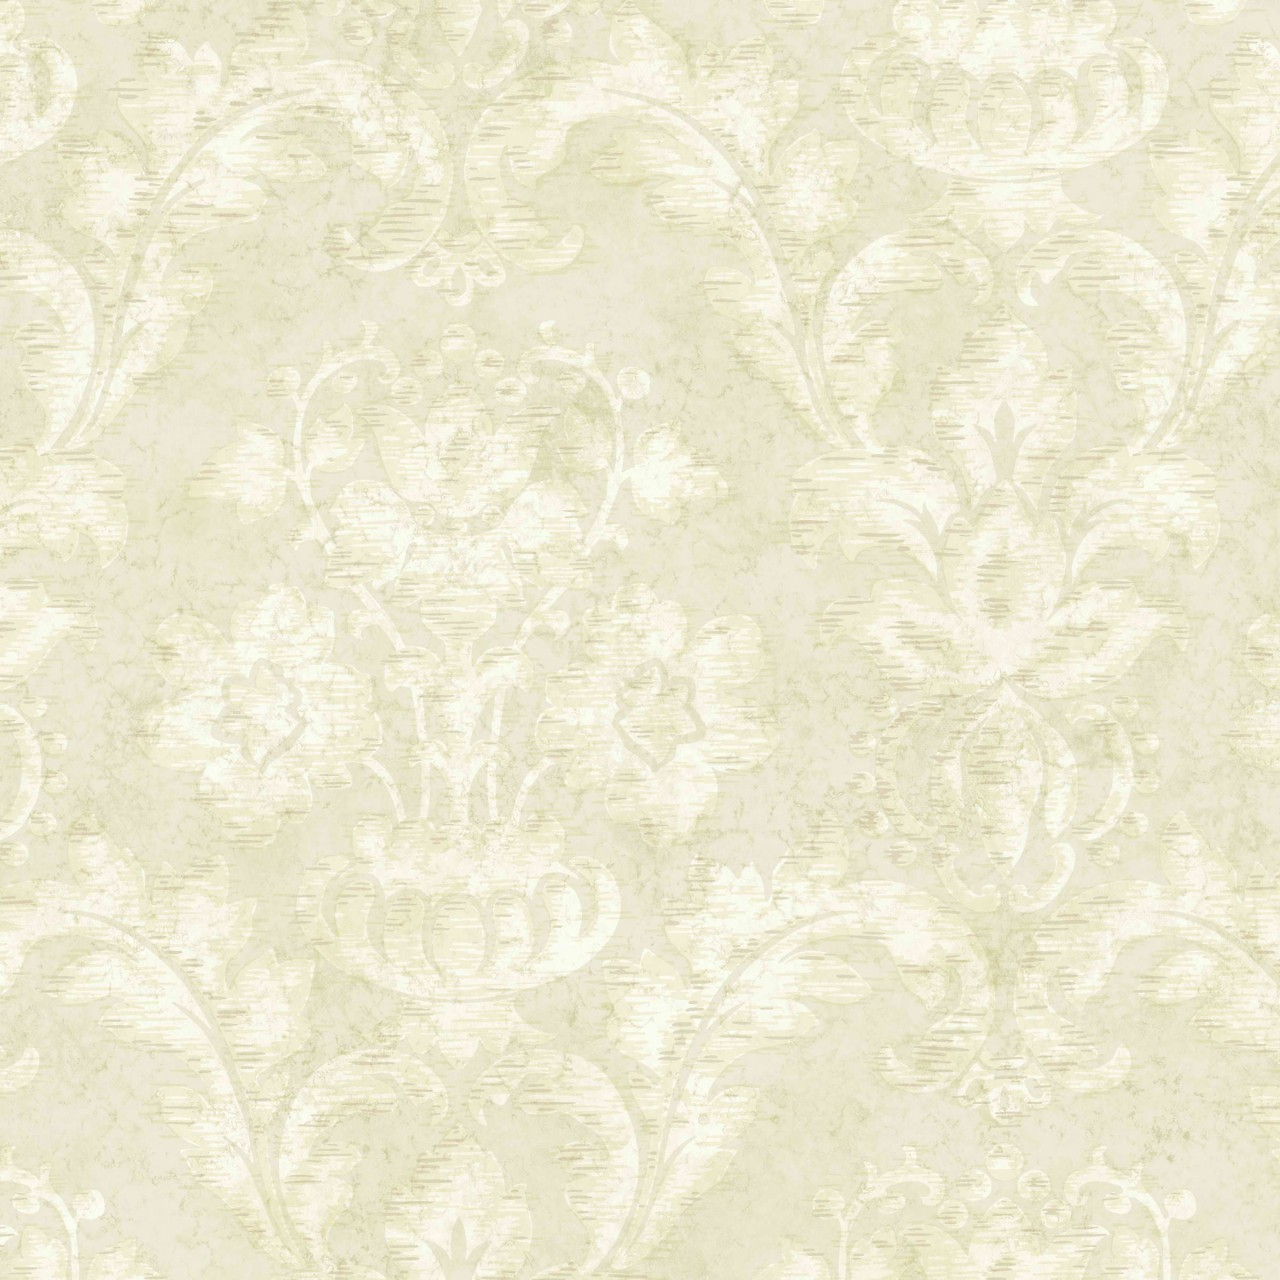 Cream damask wallpaper pictures Black Background and some PPT 1280x1280